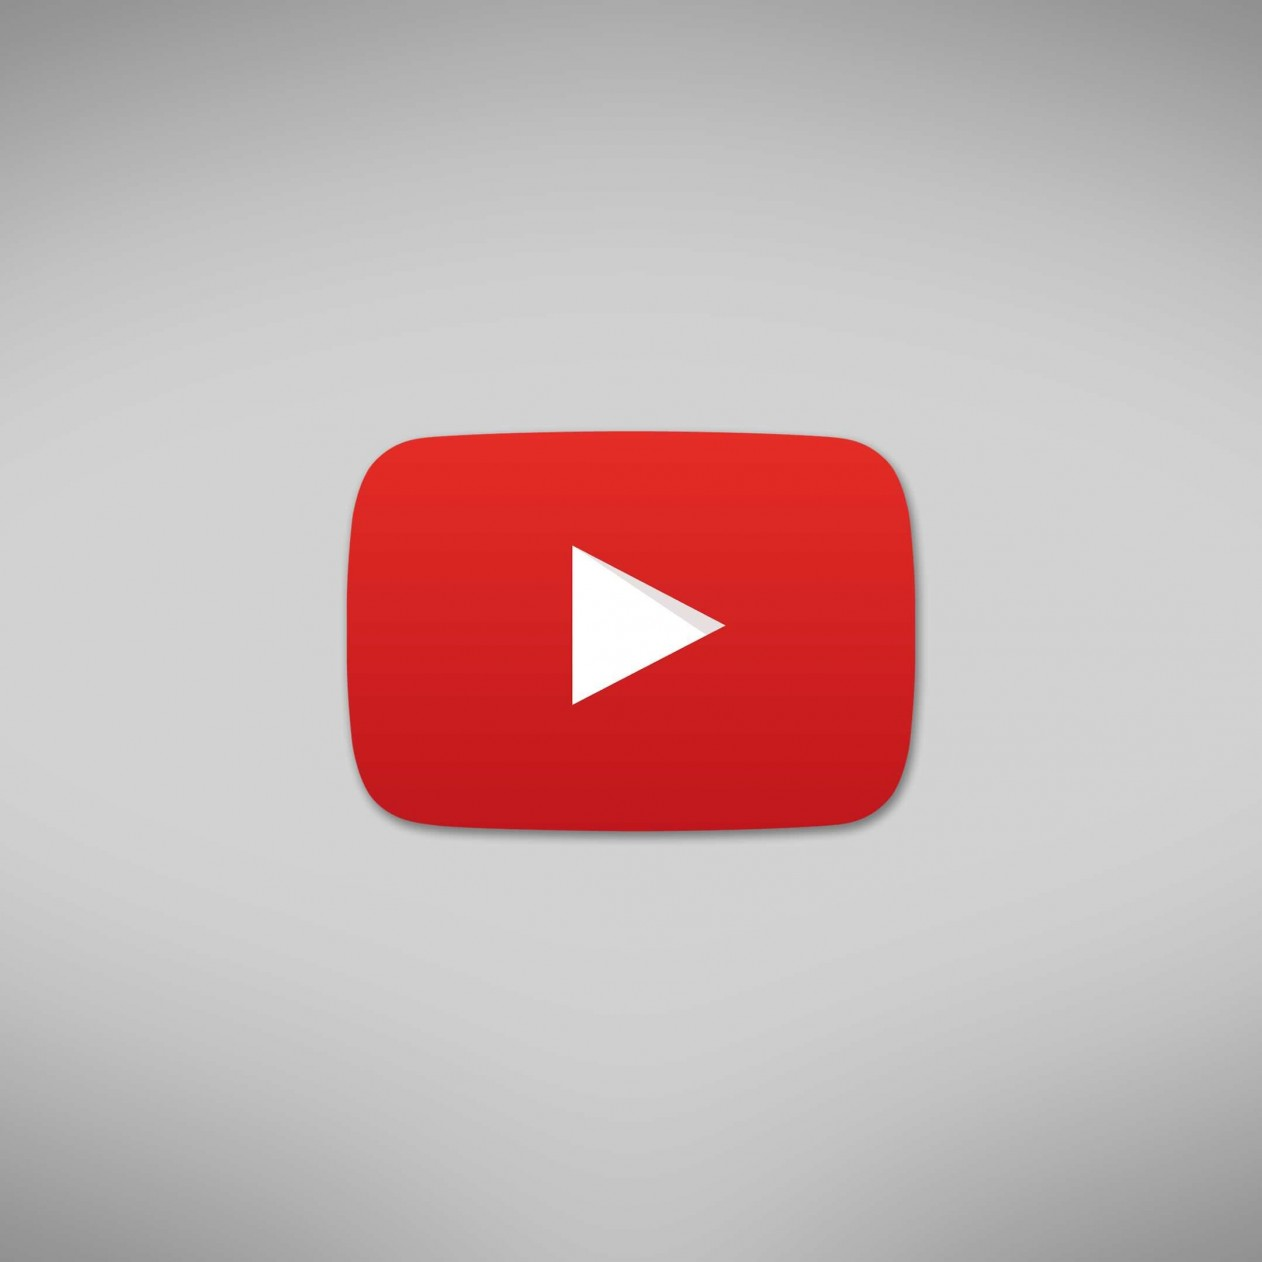 YouTube Logo Wallpaper for Apple iPad mini